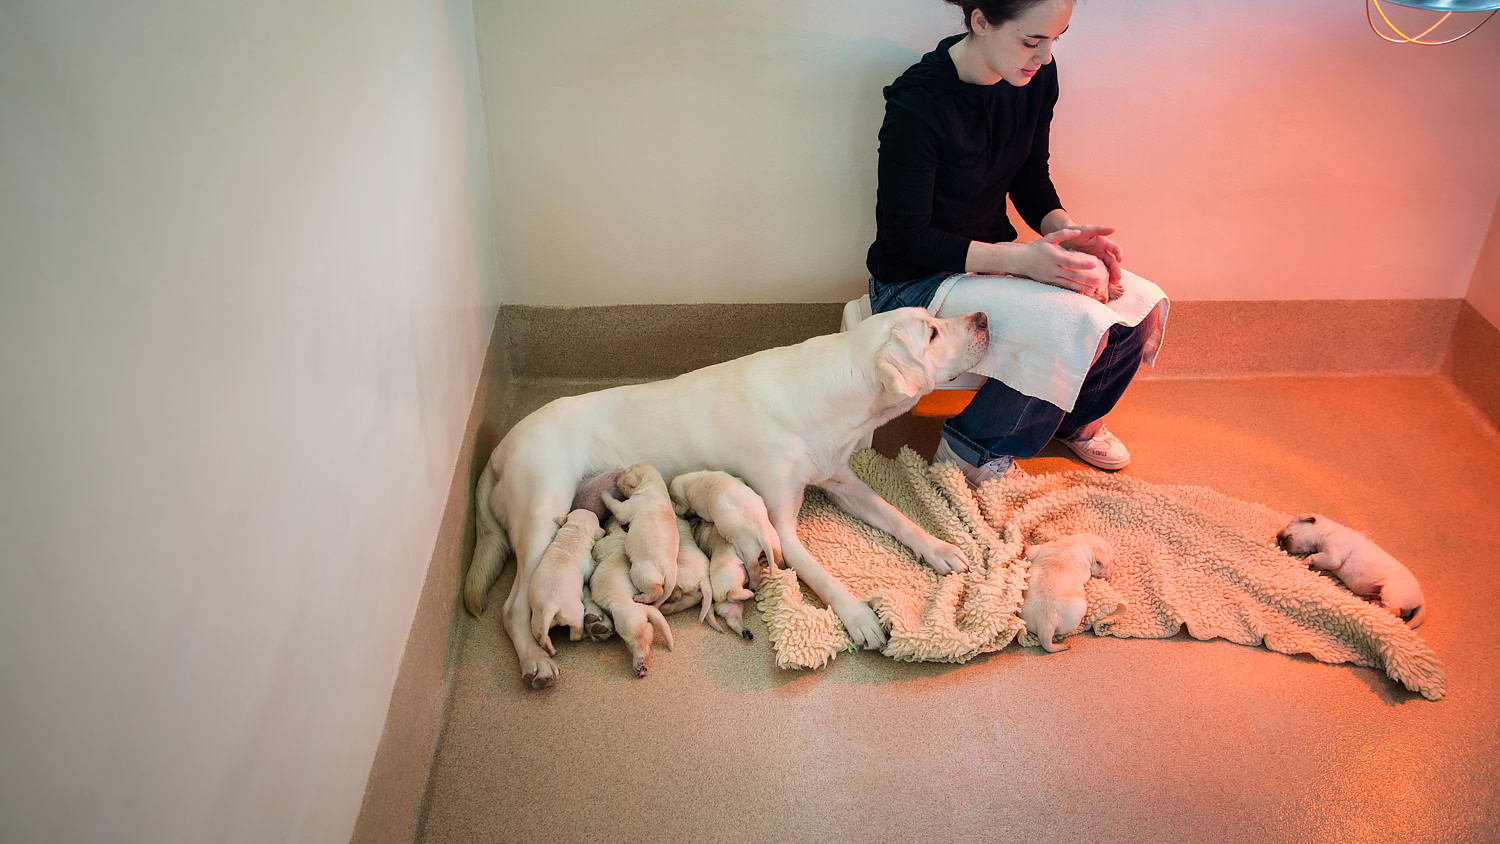 Guiding Eyes volunteer with brood Magnolia and her litter of nine yellow pups.